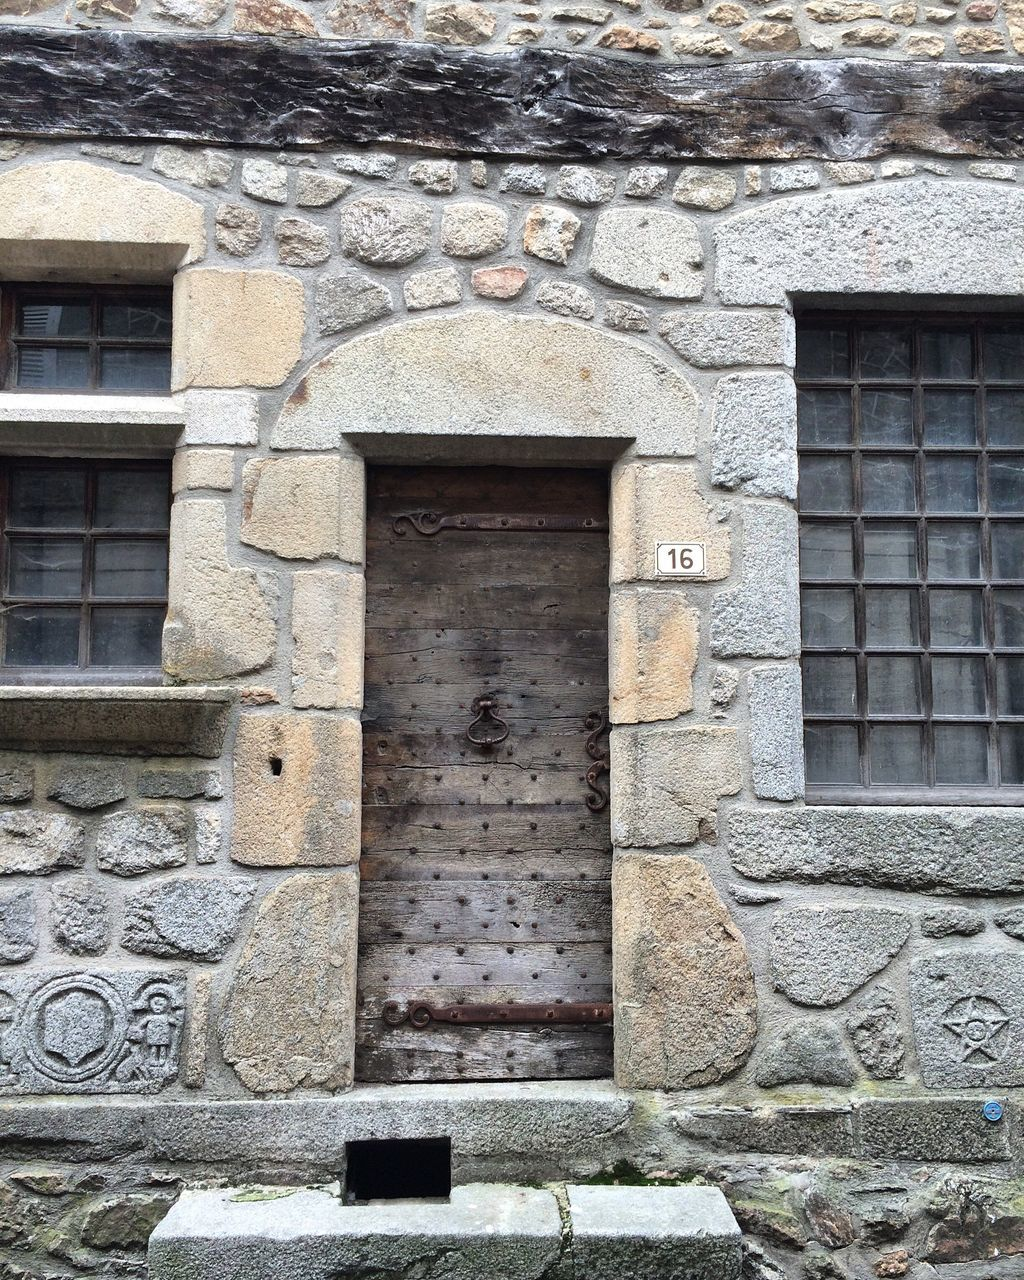 architecture, built structure, building exterior, stone material, window, no people, day, outdoors, history, close-up